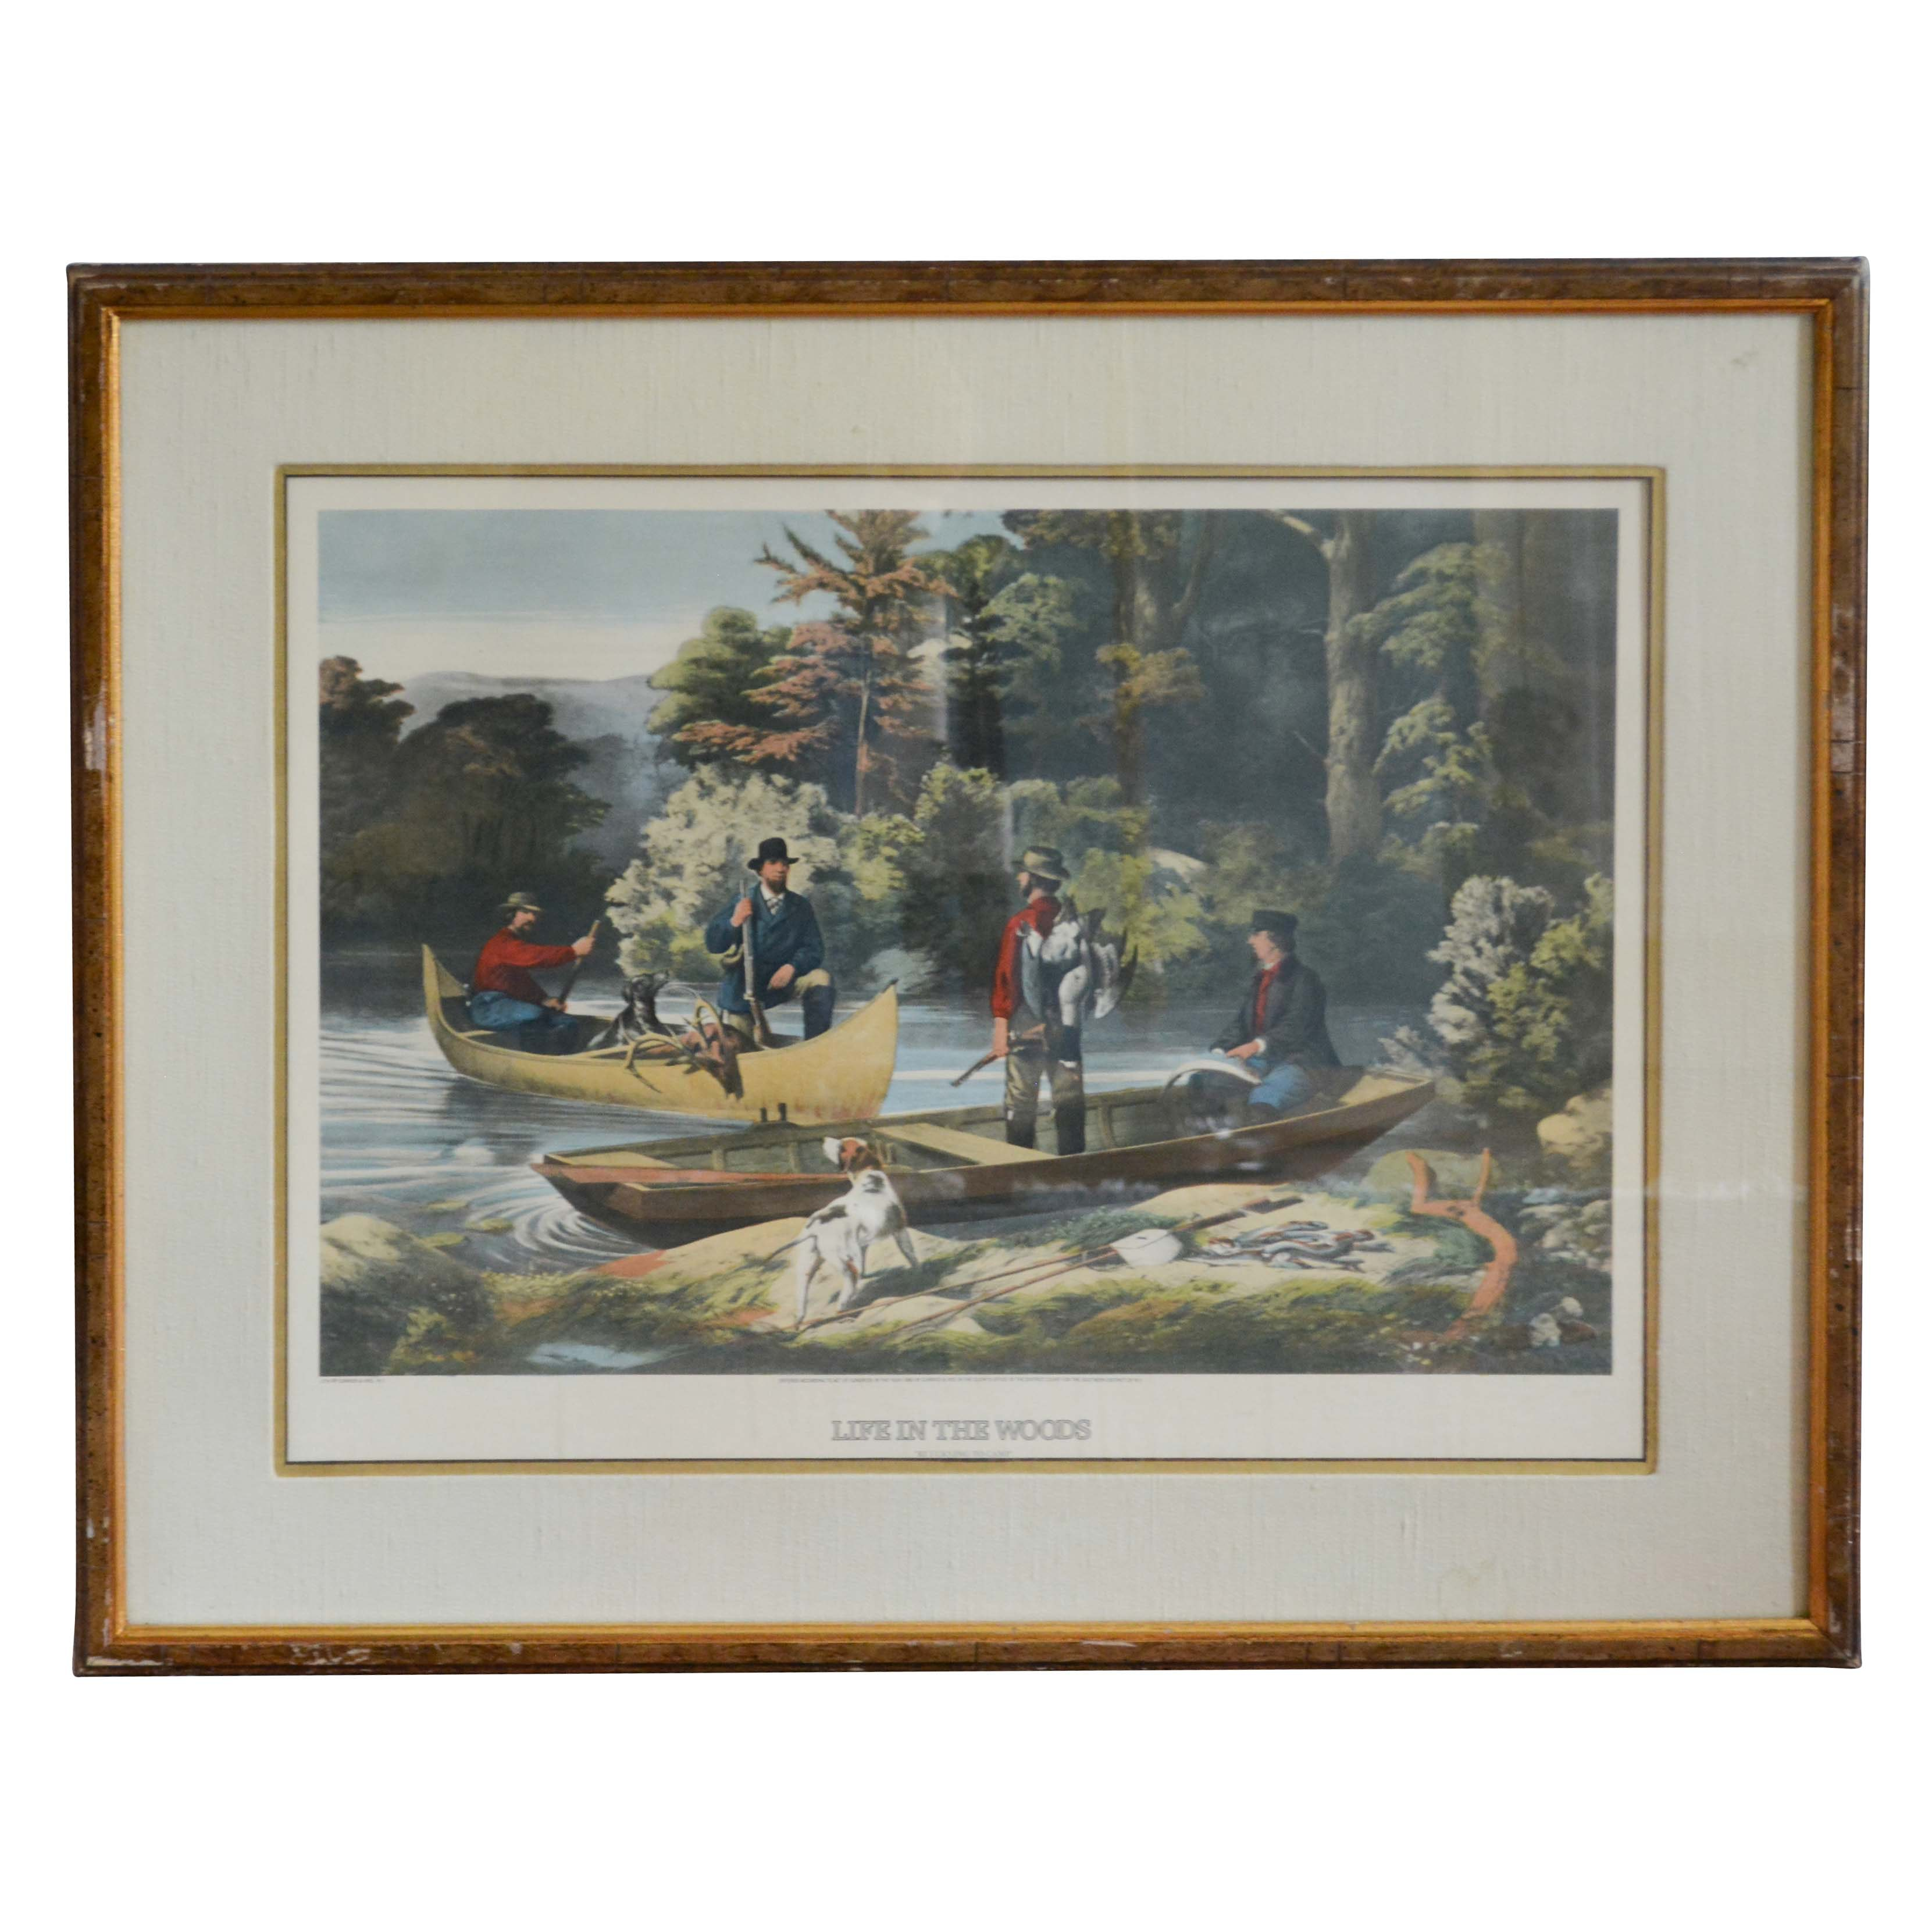 """Currier and Ives Lithographic Print """"Life in the Woods"""""""